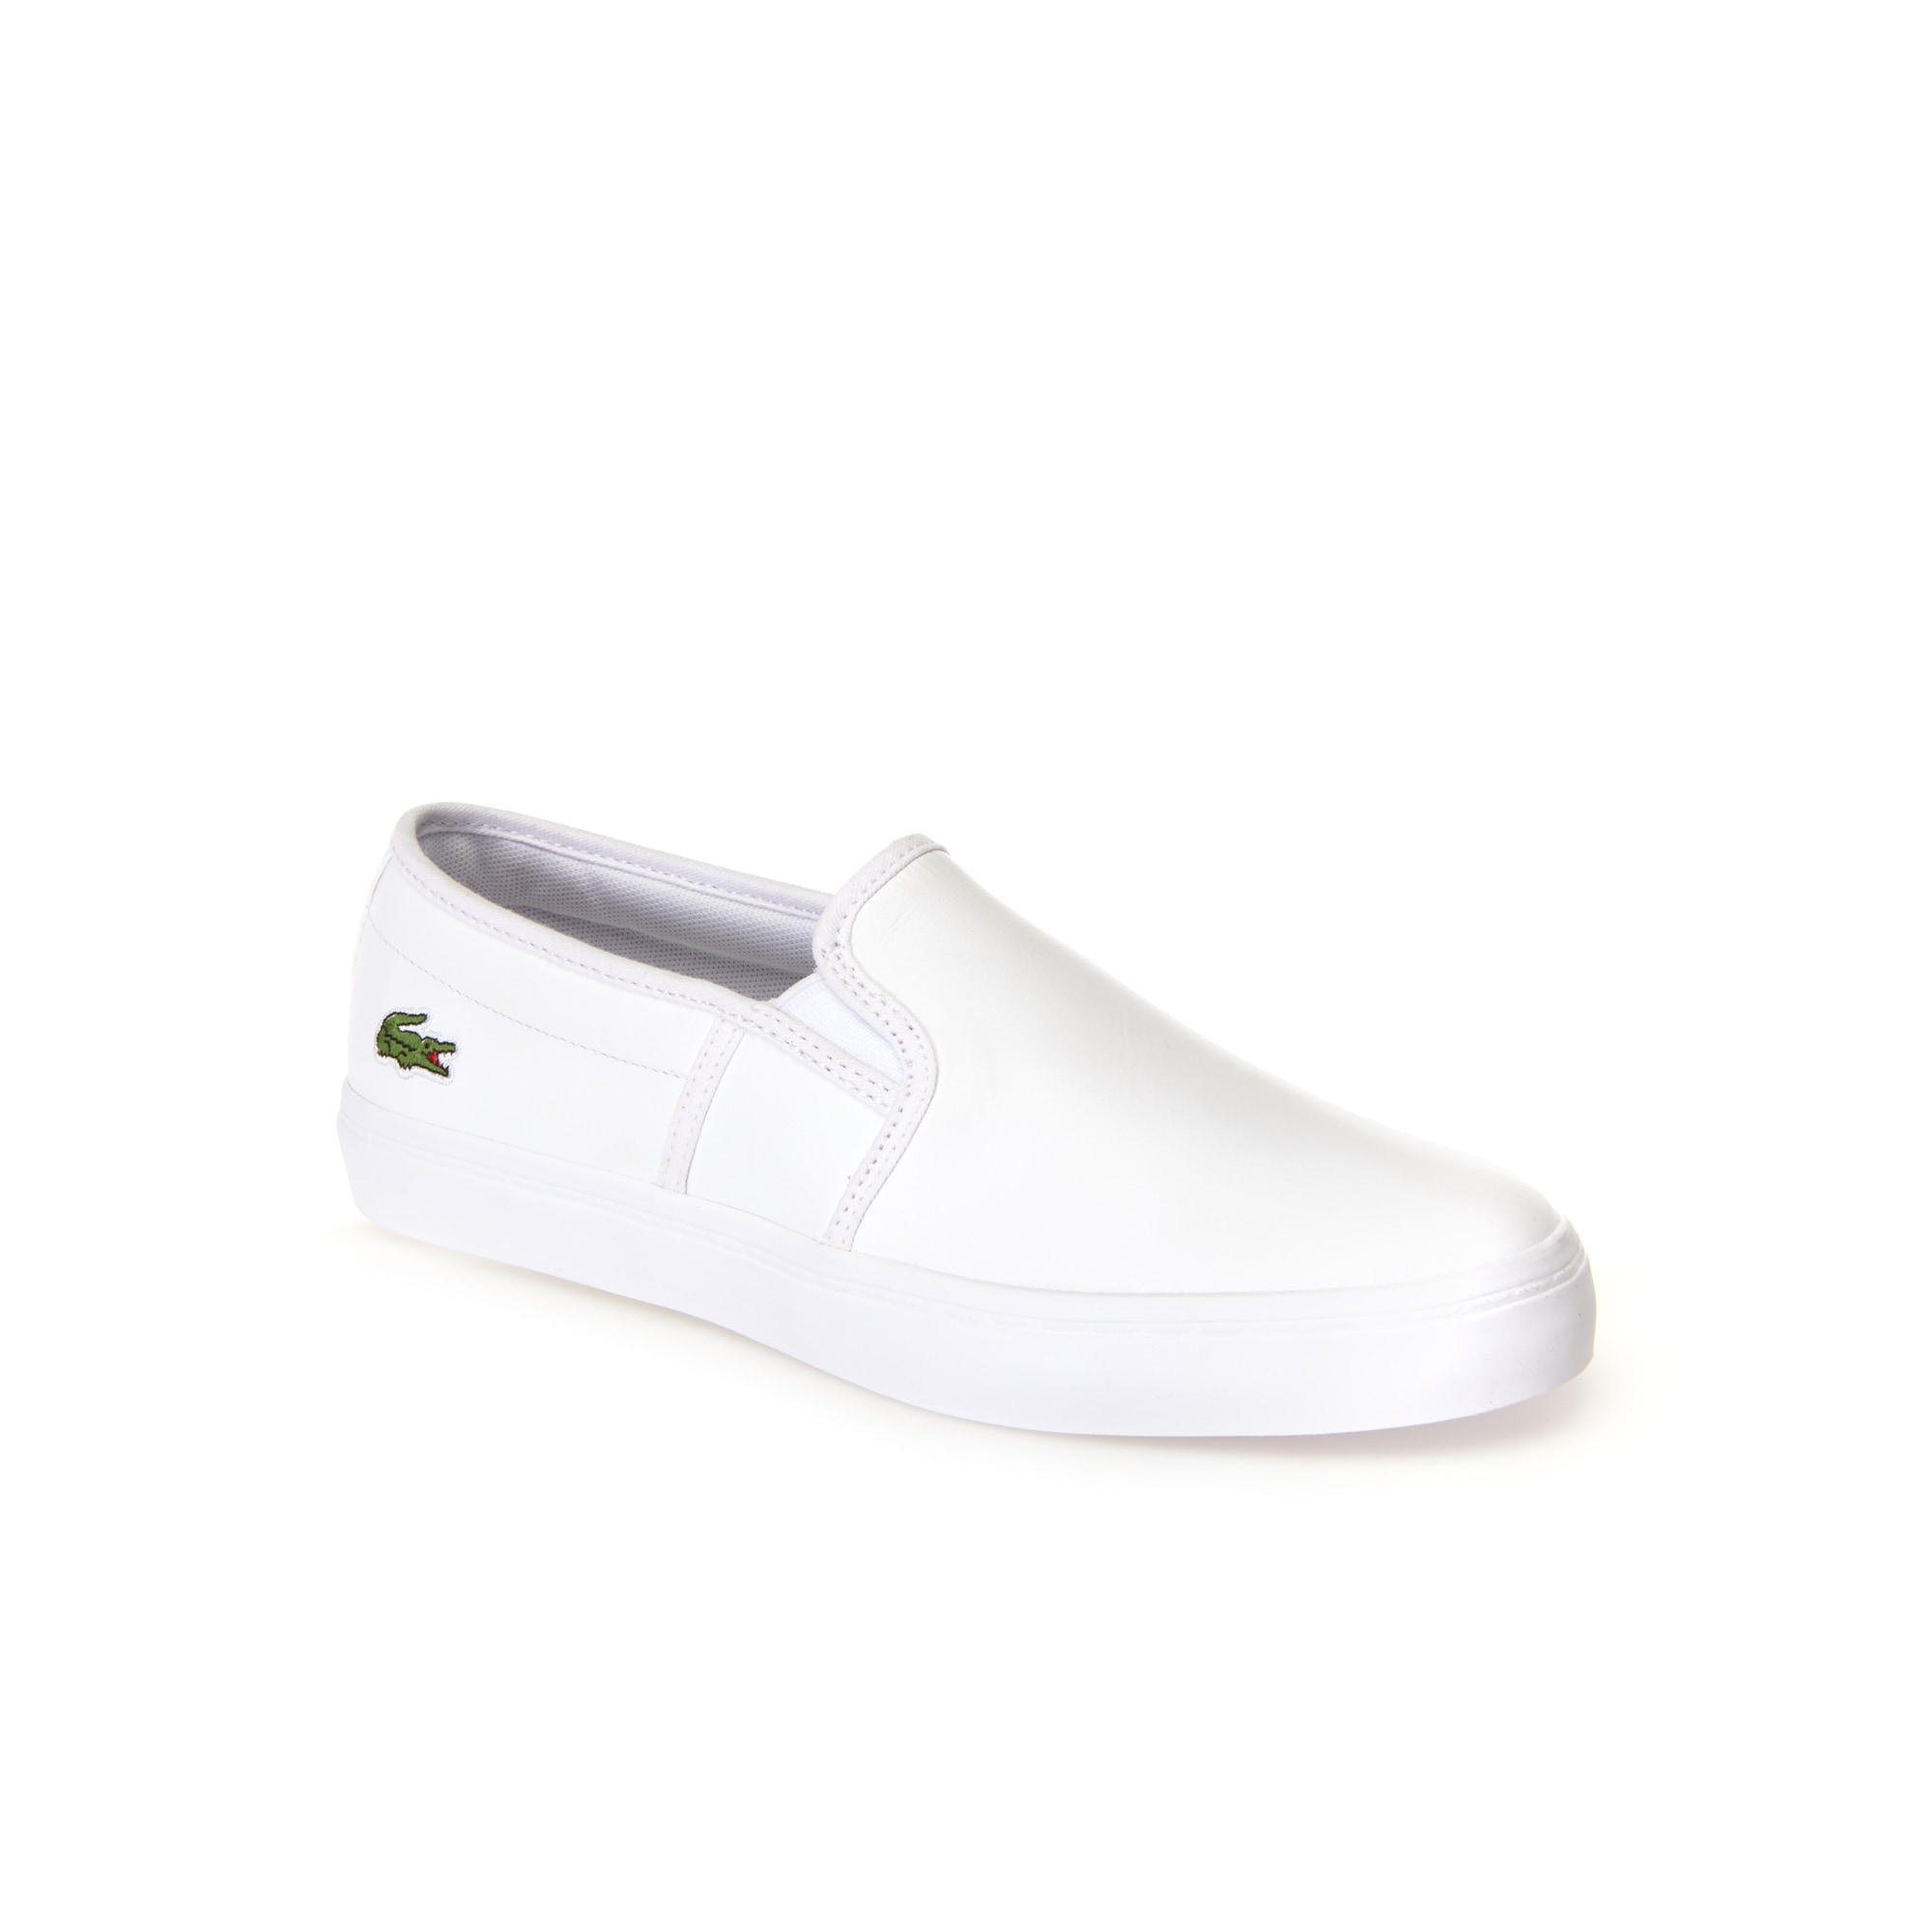 Women's Gazon BL Leather Slip-ons